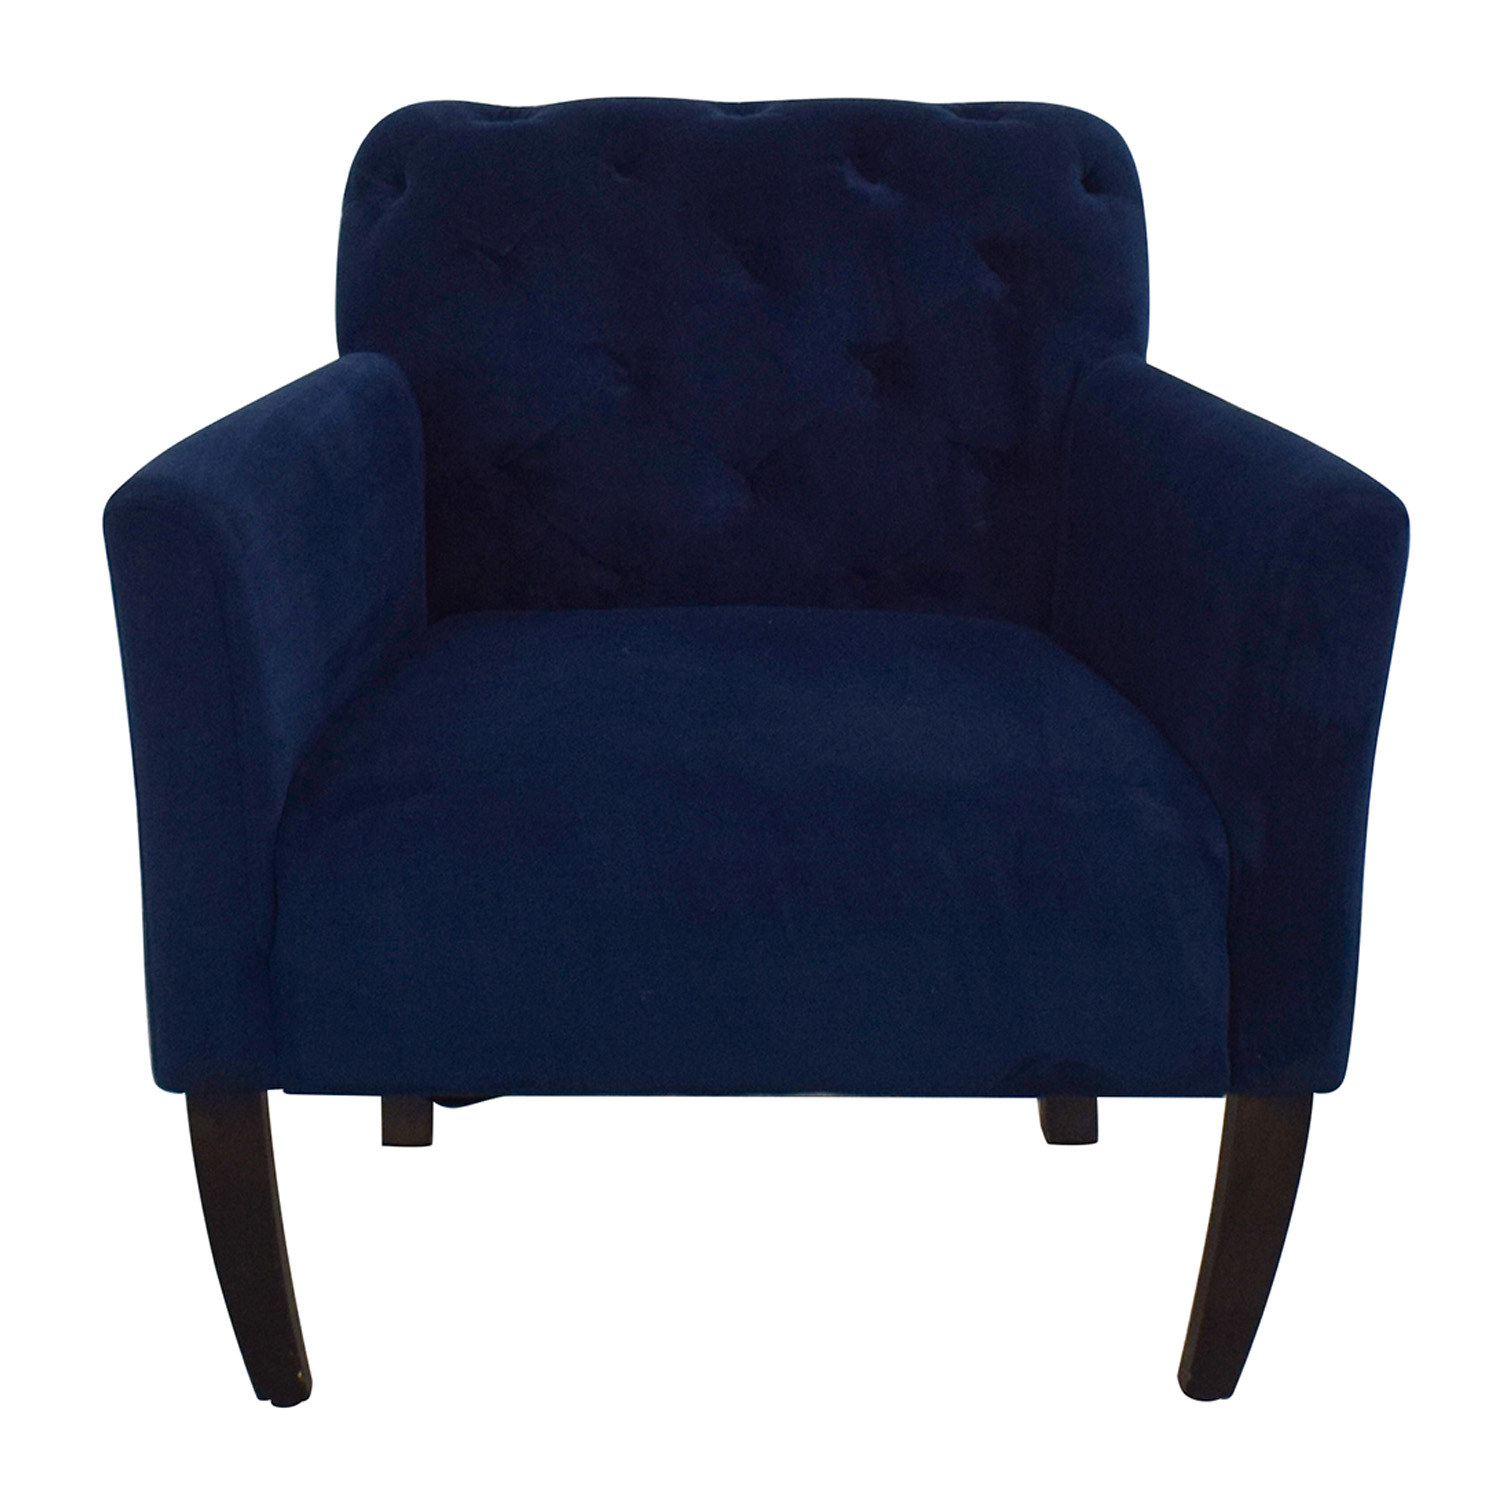 66 Off West Elm West Elm Elton Accent Chair Chairs